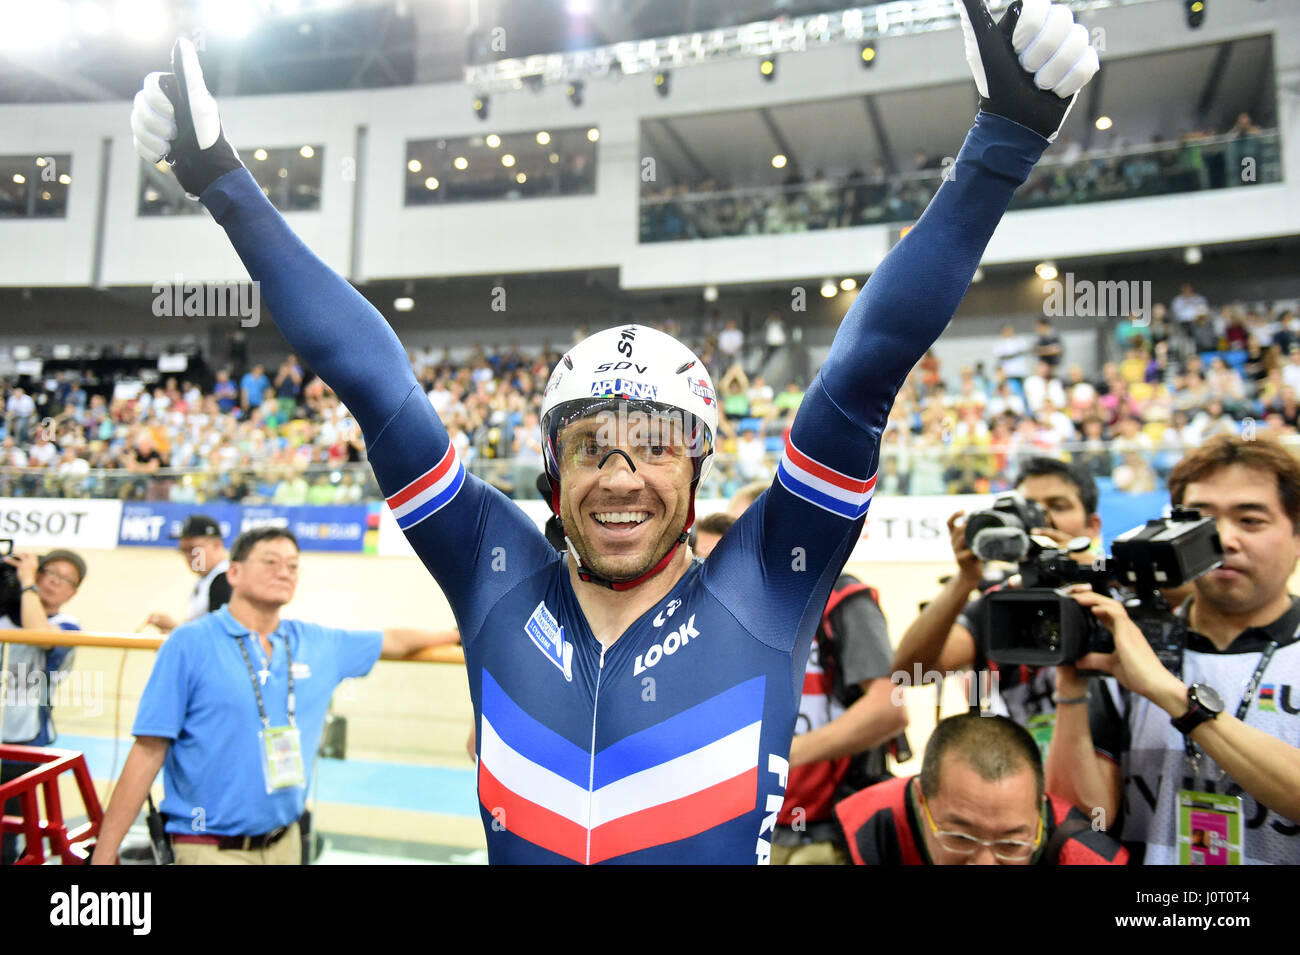 Hong Kong, China. 16th Apr, 2017. Francois Pervis of France celebrates after winning Men's 1km Time Trial Final - Stock Image